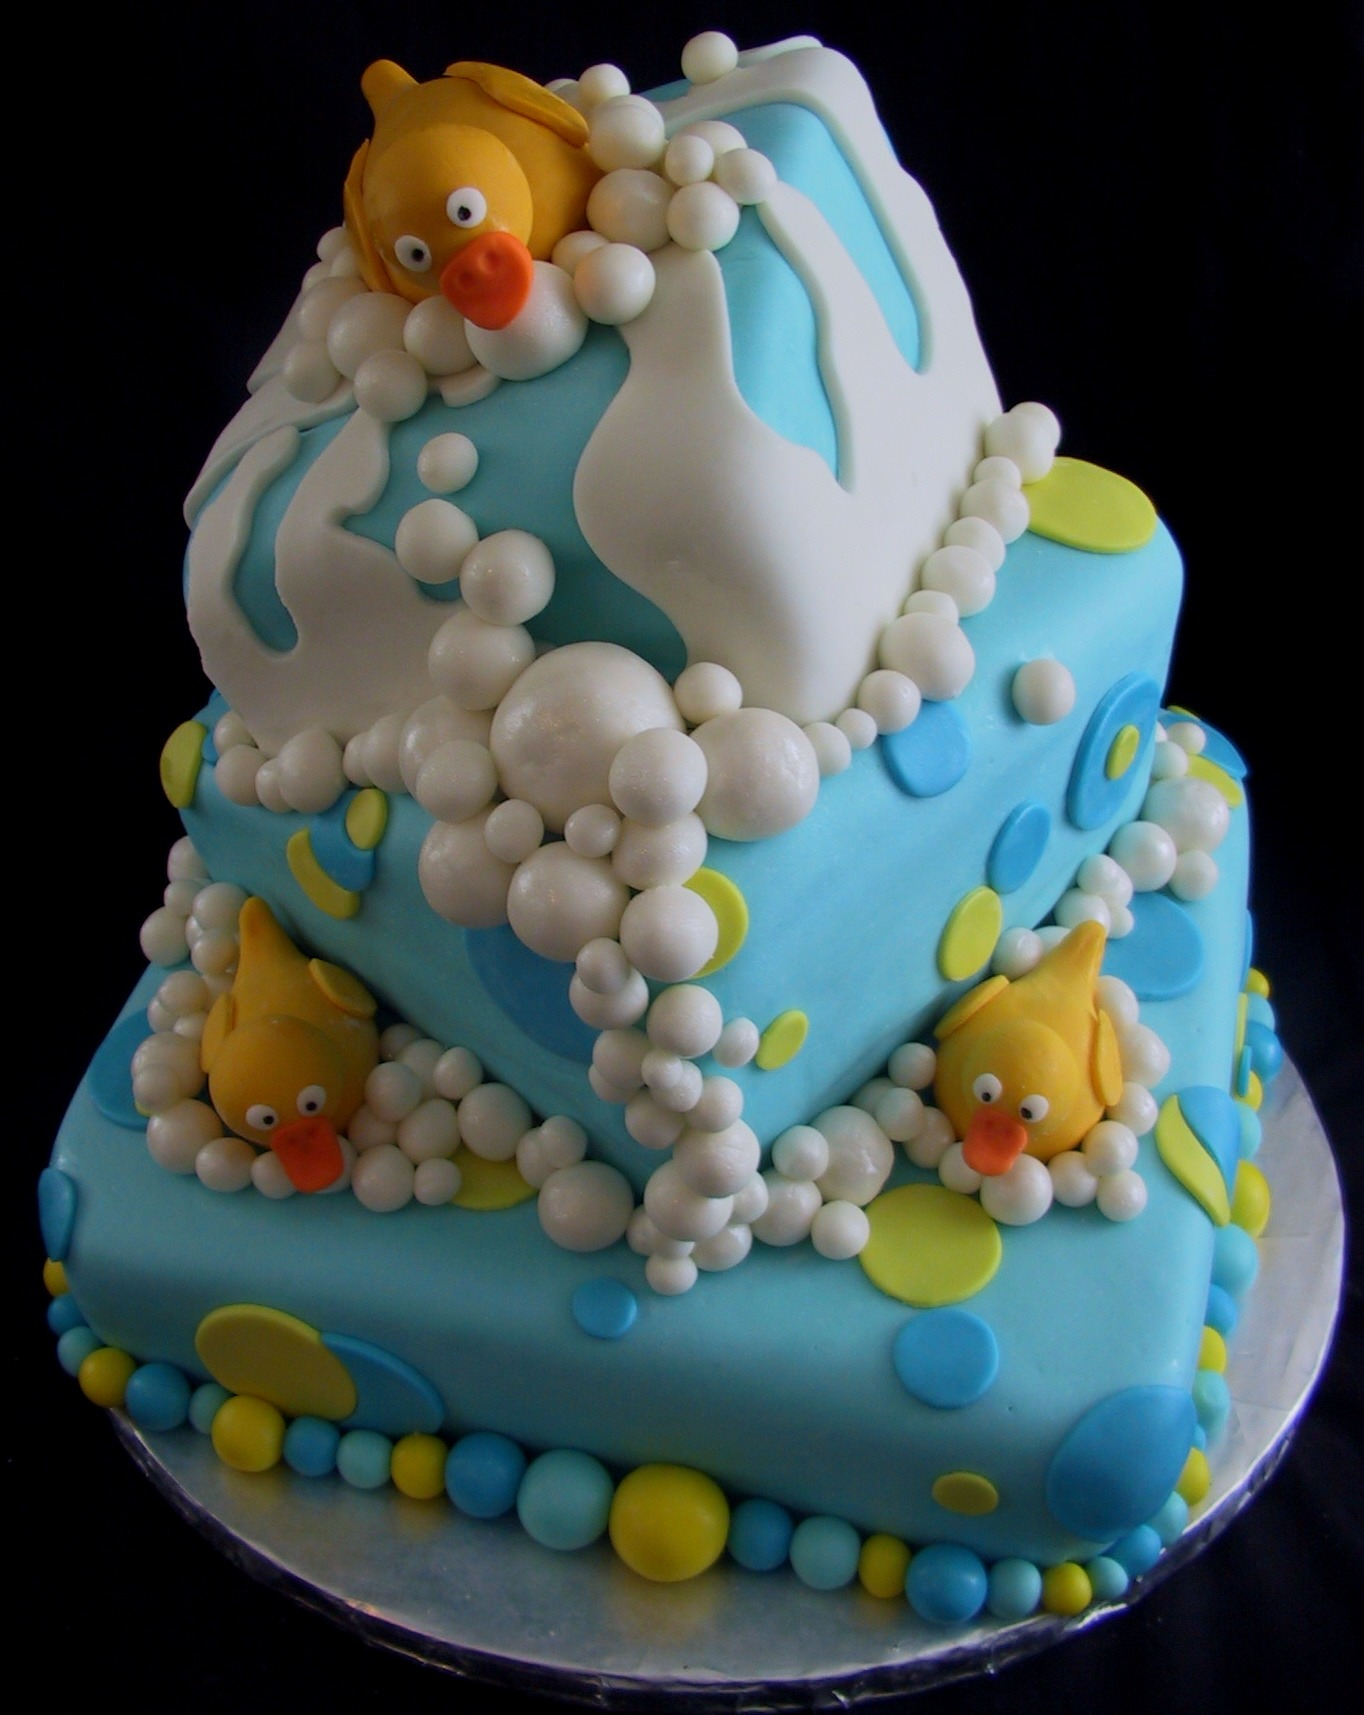 Birthday Cake Pictures For Baby : 70 Baby Shower Cakes and Cupcakes Ideas